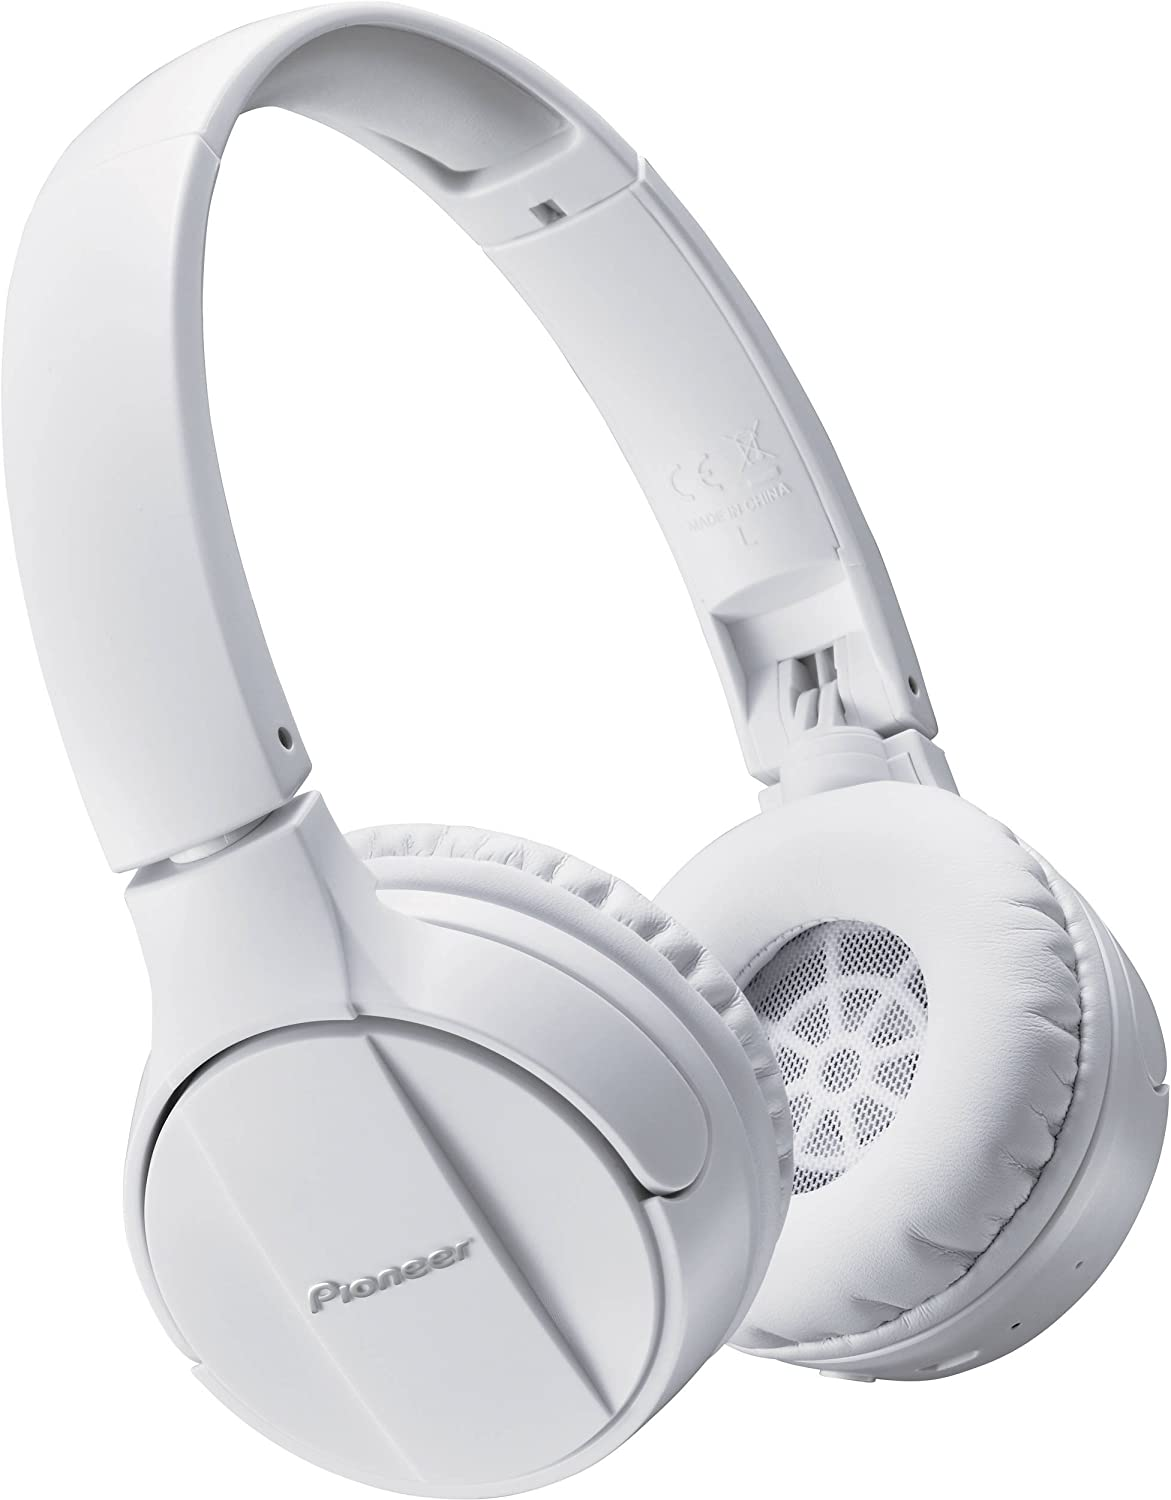 Pioneer SE-MJ553BT-W - Auriculares inalámbricos Bluetooth externos para smartphones Android, Windows y Apple, estéreo, con micrófono, 10 Hz a 22000 Hz, Blanco